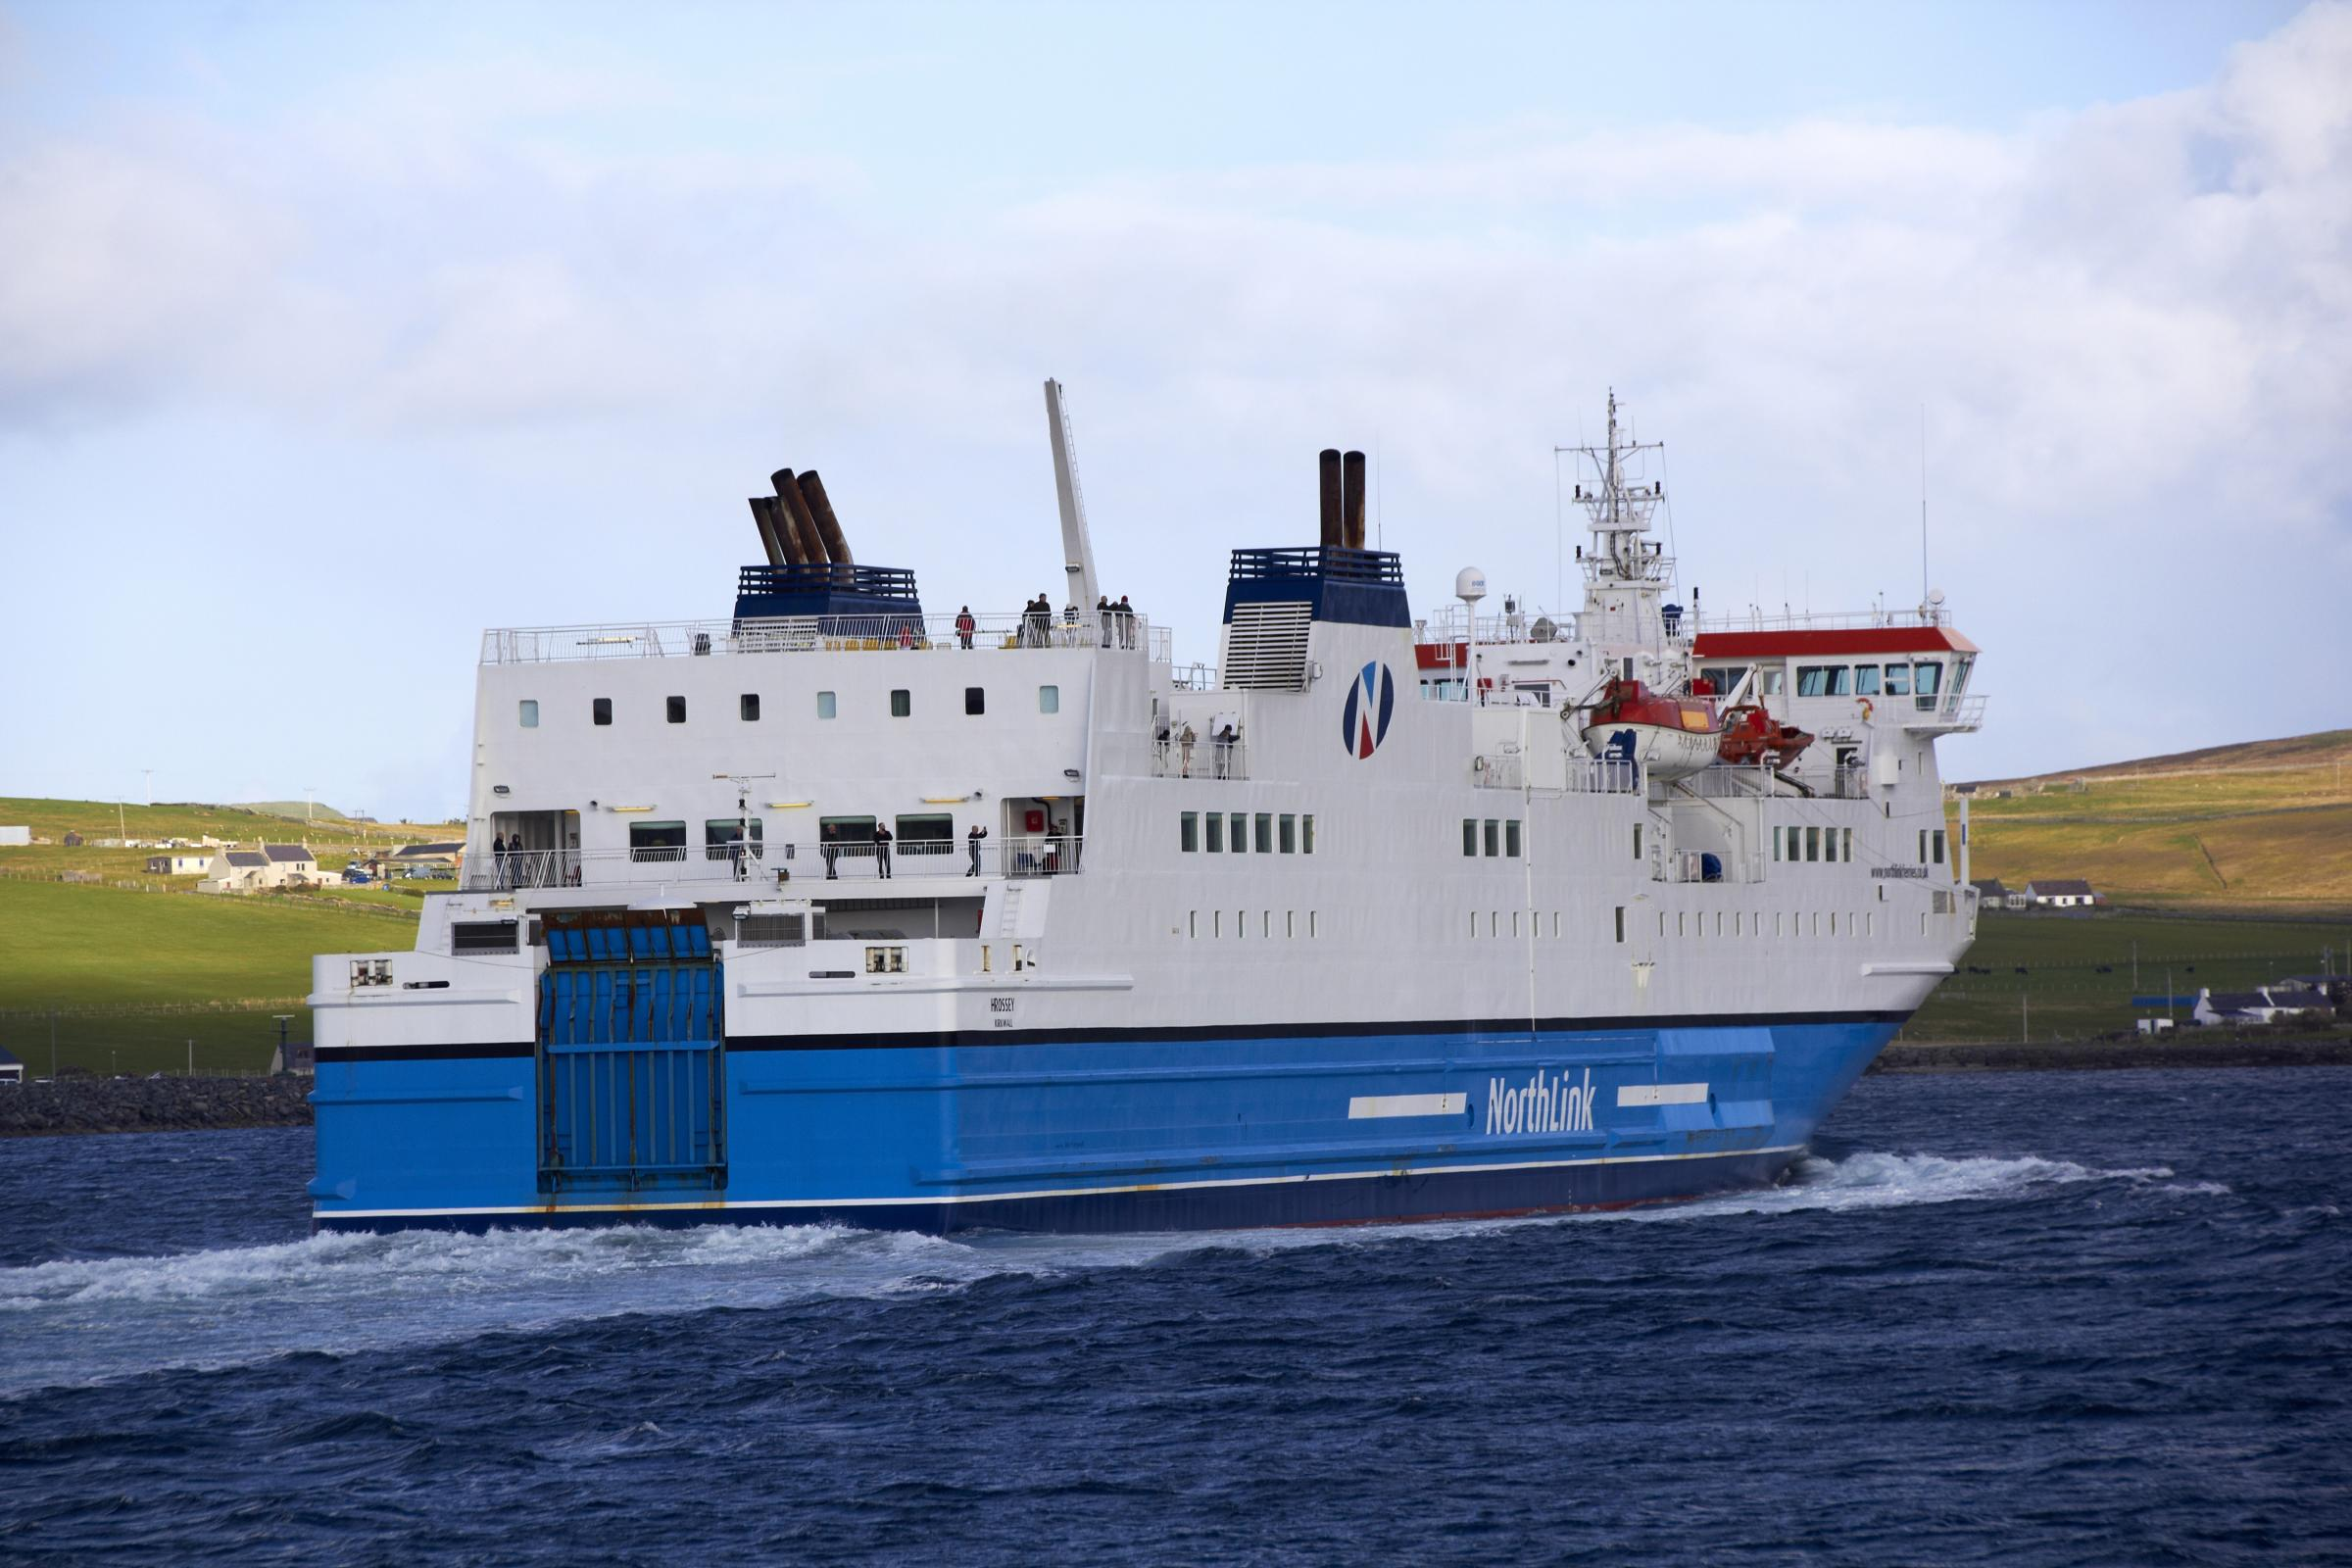 Serco to run ferries to Orkney and Shetland in £450m contract